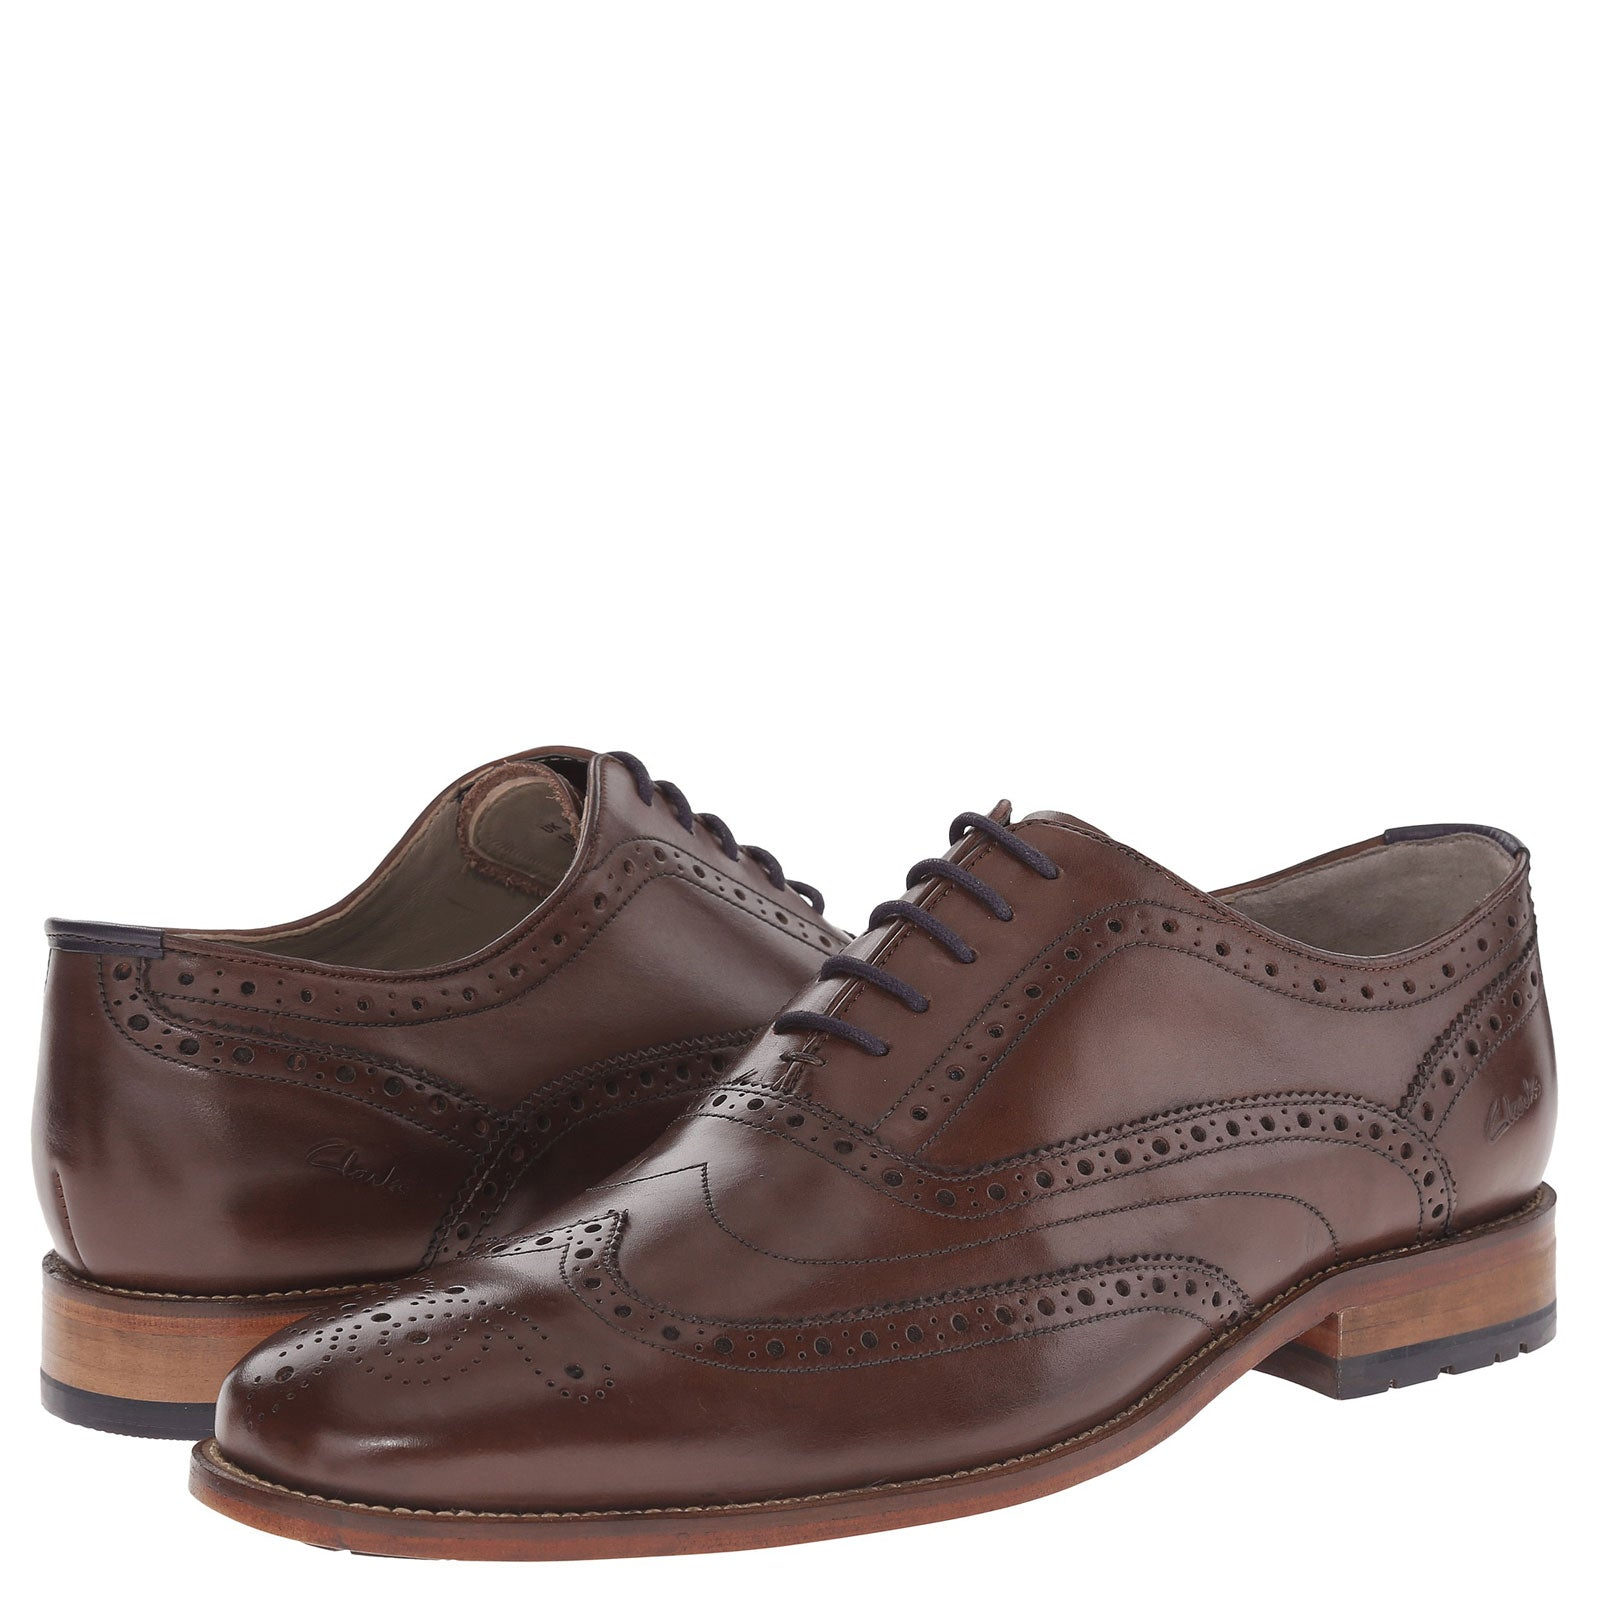 Clarks Penton Limit Chestnut Aubrey